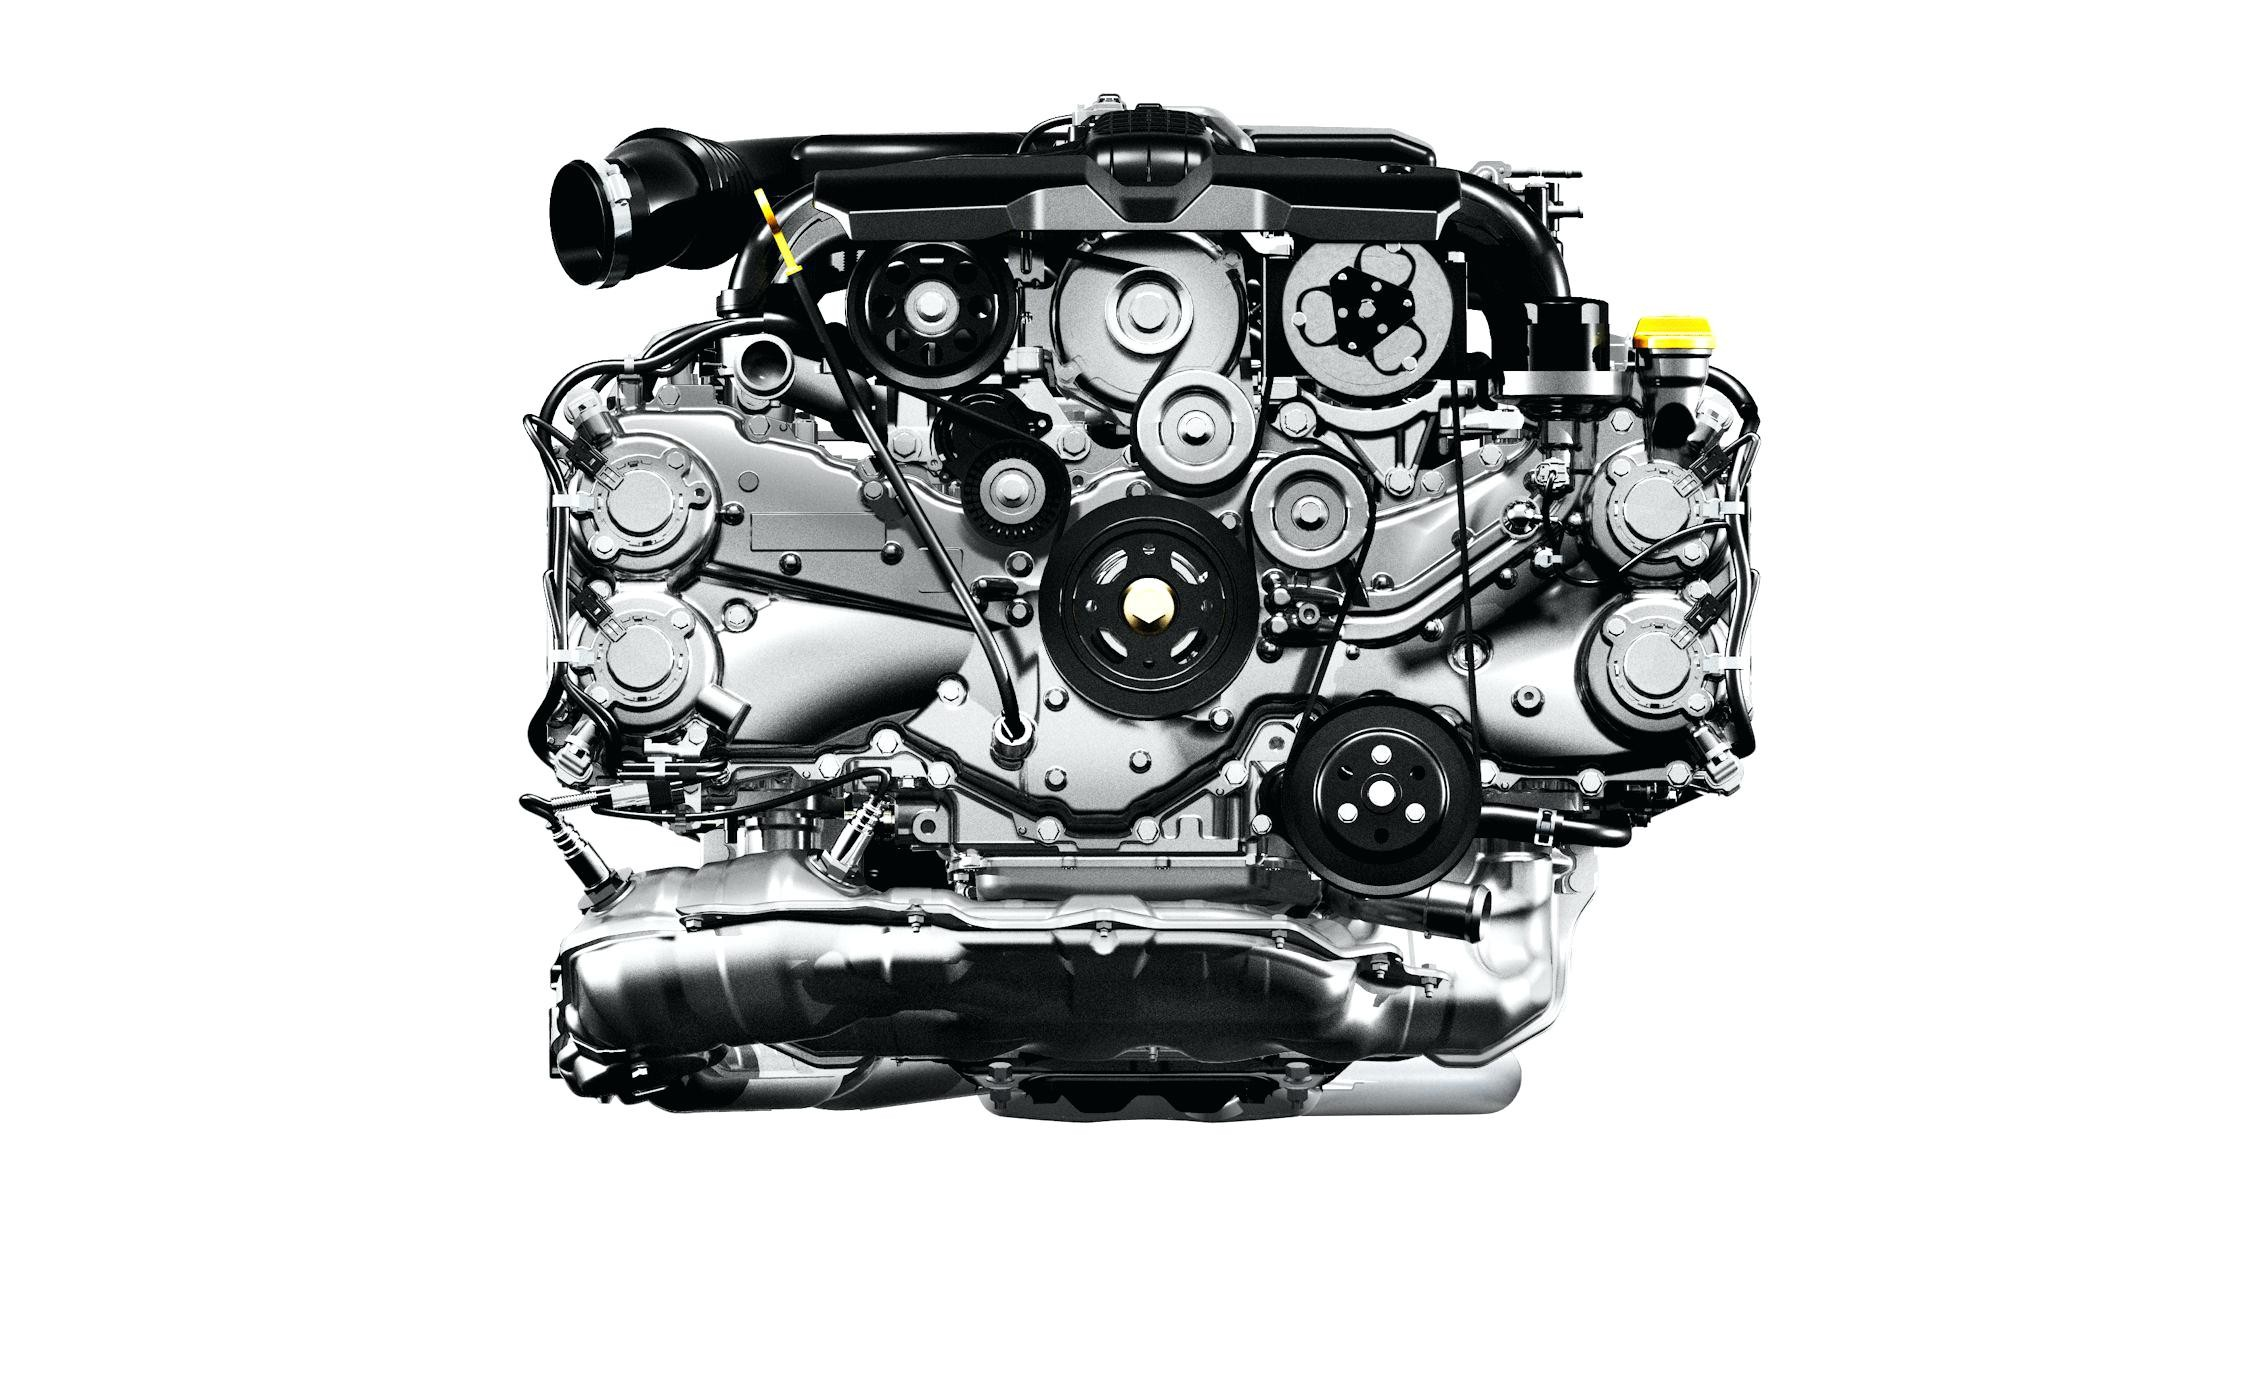 Scion Frs Boxer Engine Diagram Scion Frs Boxer Engine Diagram E force Supercharger Systems Fr S Of Scion Frs Boxer Engine Diagram